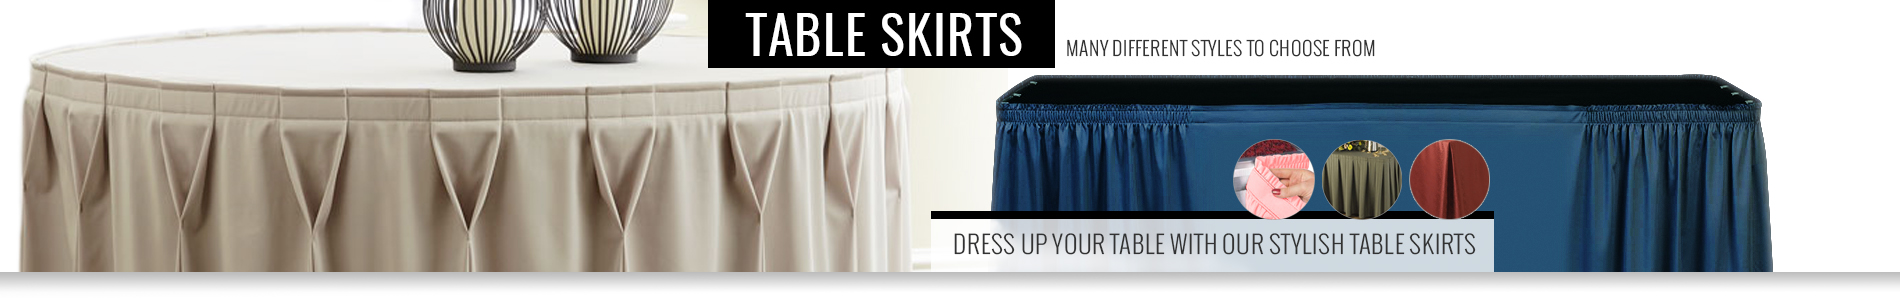 Trade Show Table Skirts